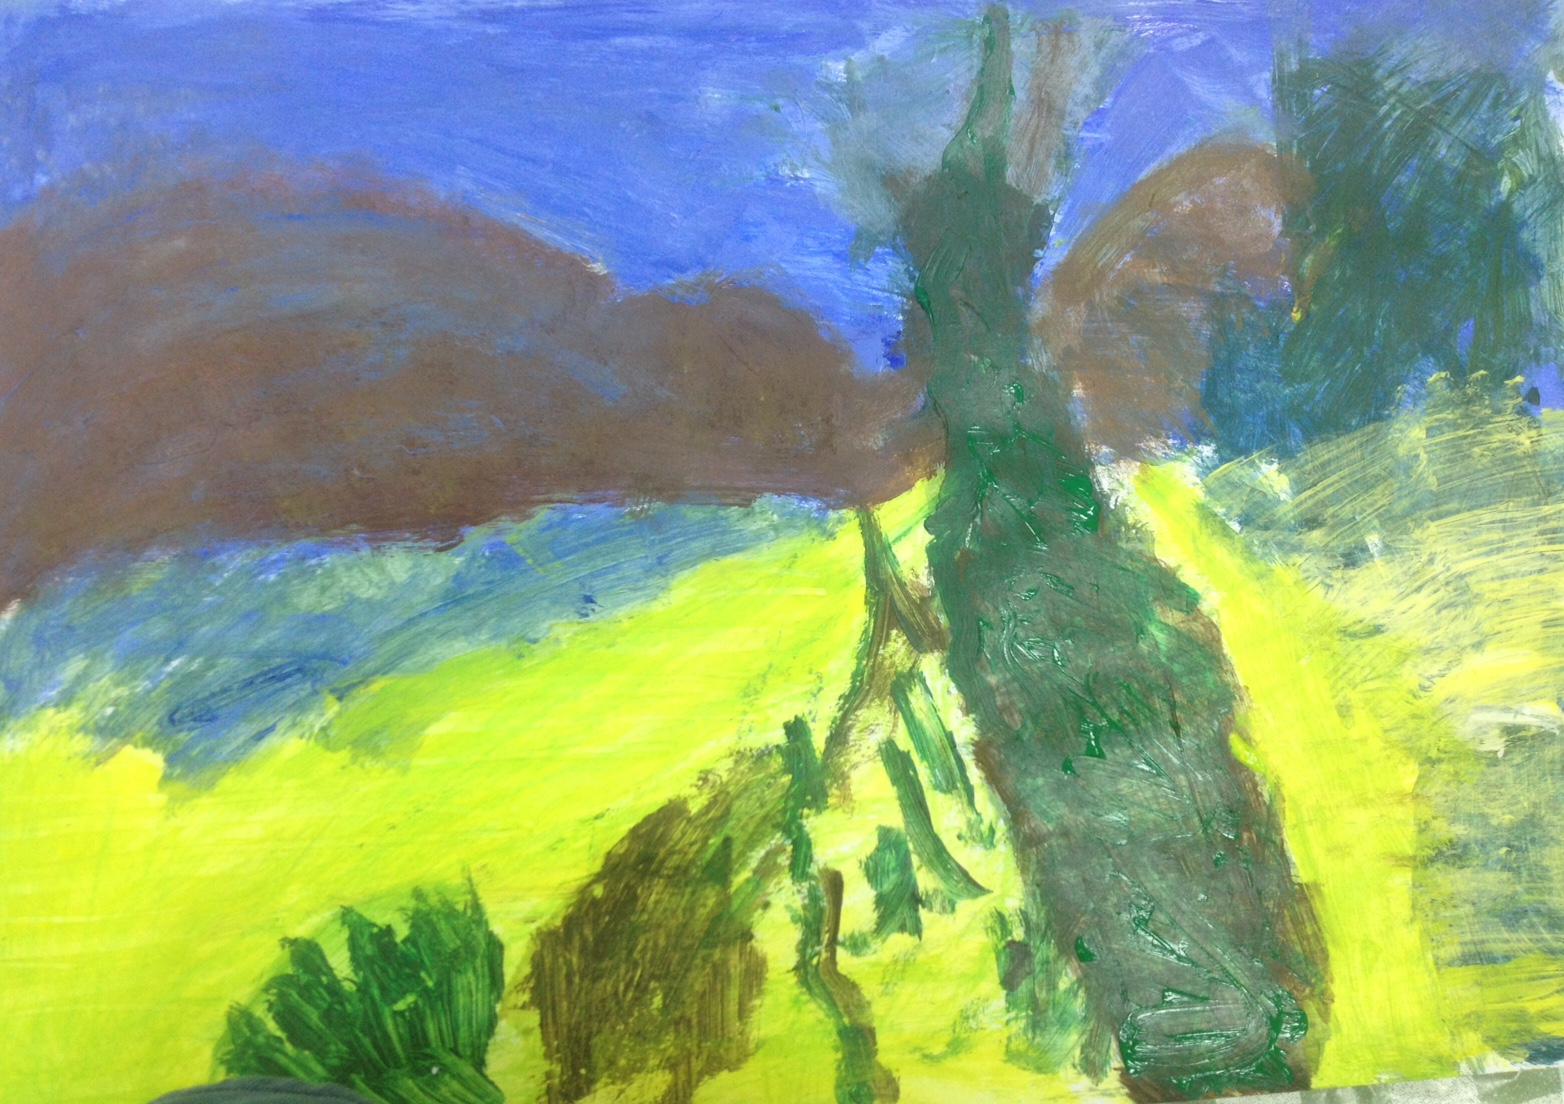 In the painting workshop, clients learn to use colors, even if color-blind. Photo courtesy of Migdal Or